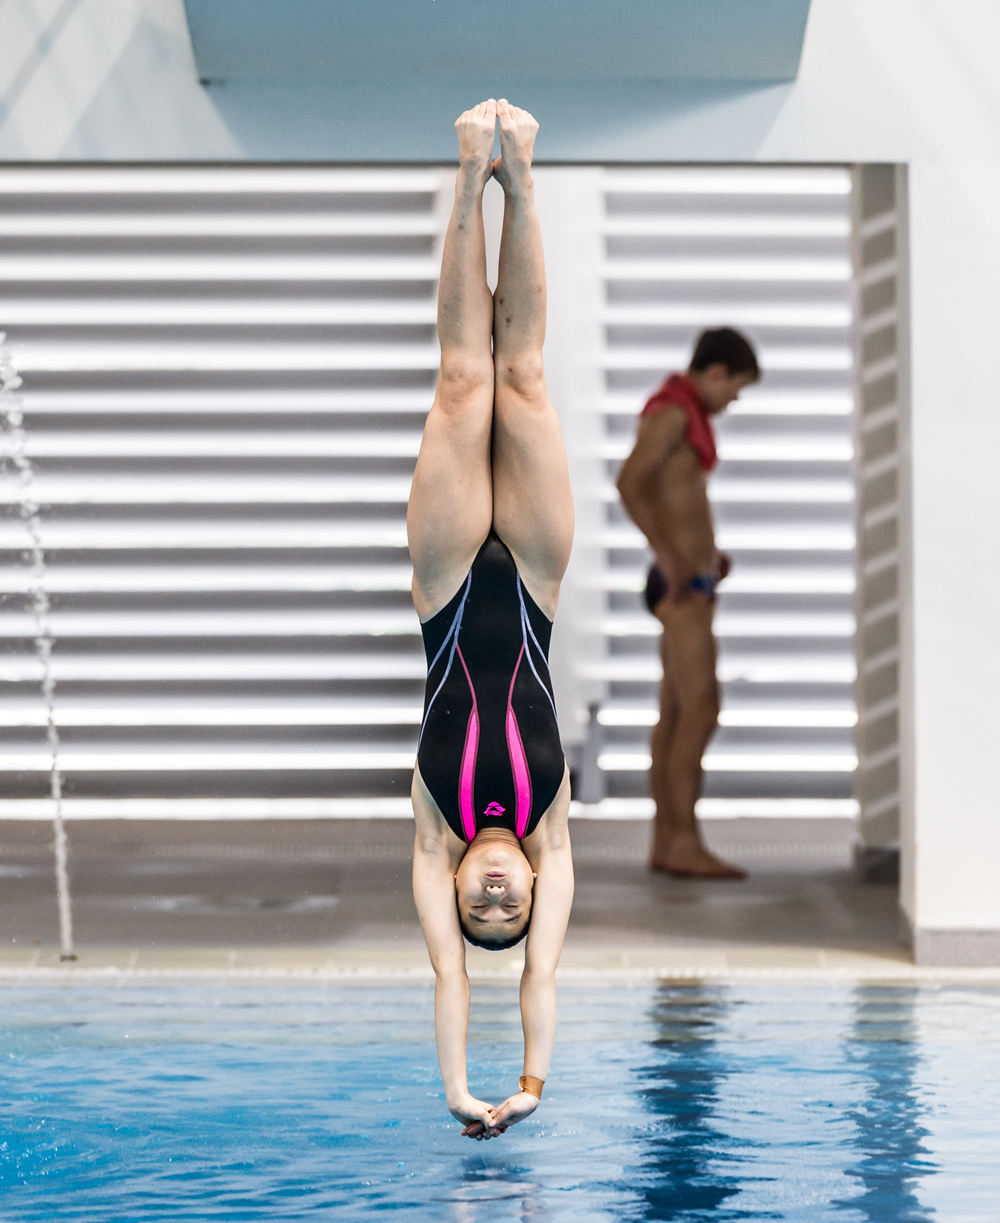 A Singaporean diver prepares to enter the water during the Singapore National Diving Championships at the OCBC Aquatic Centre.